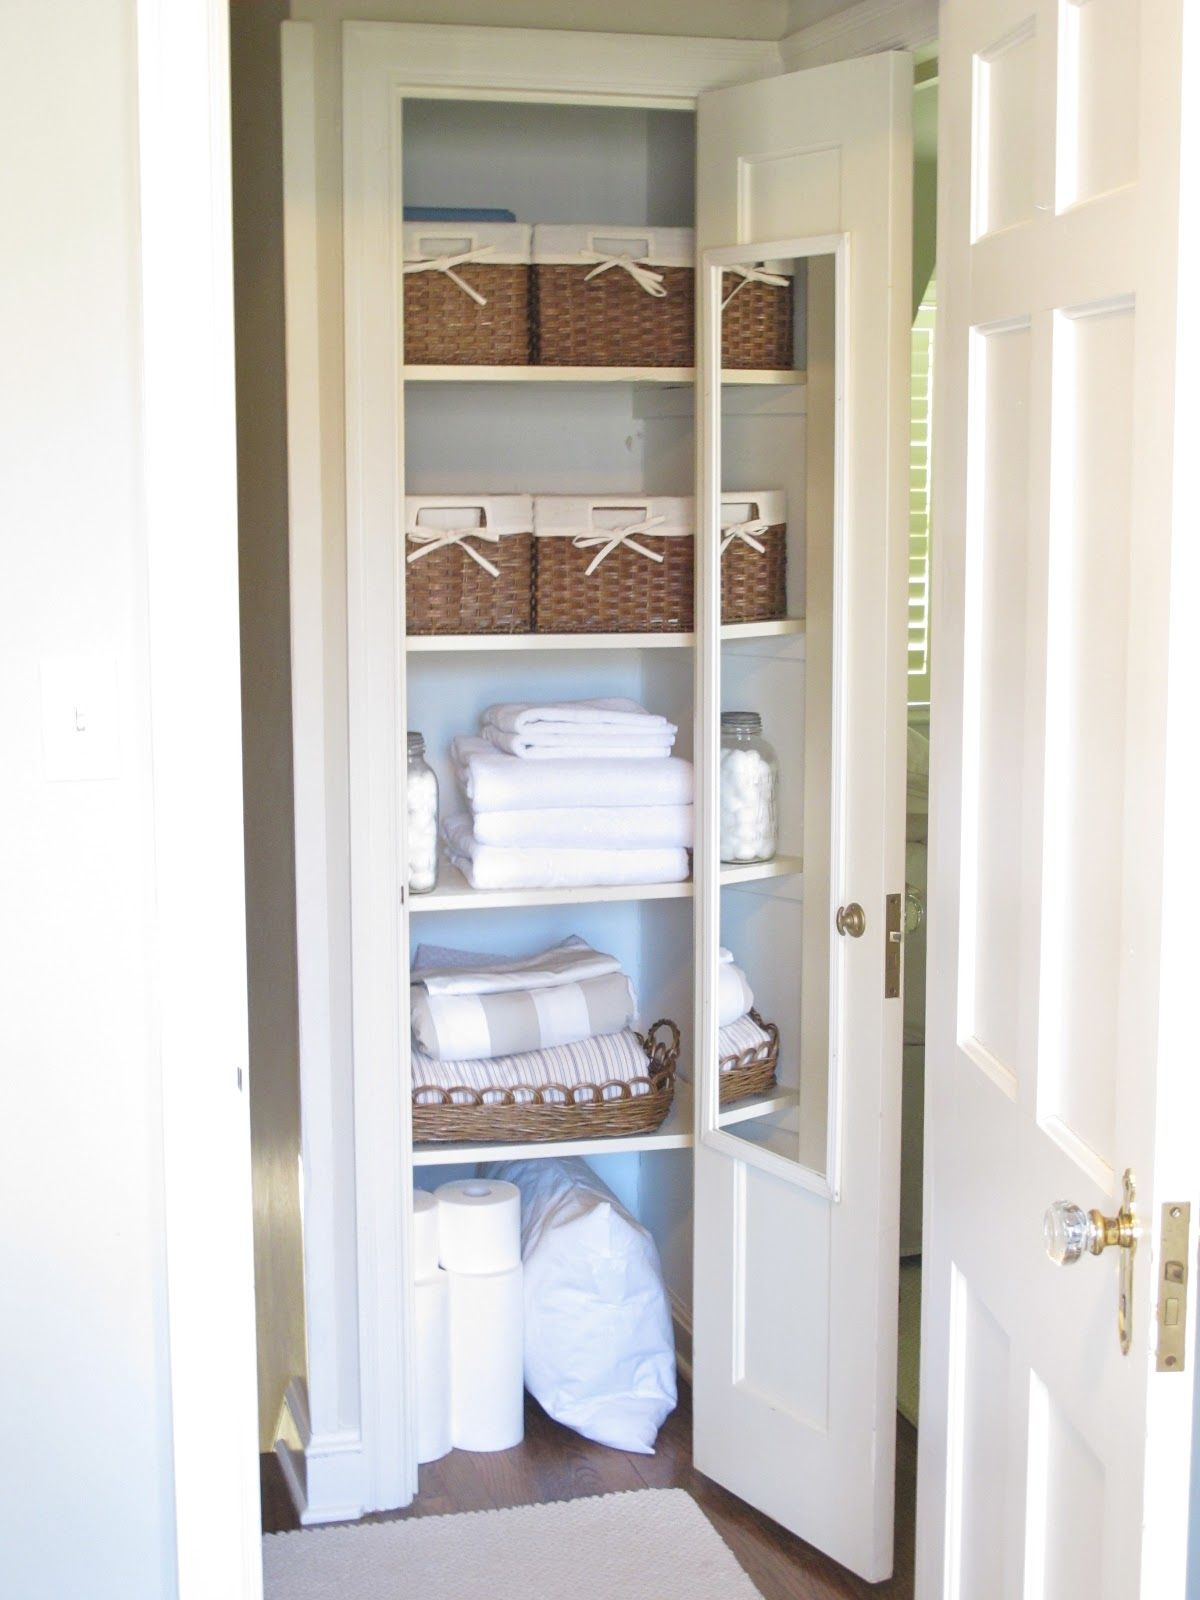 How To Organize A Small House linen closet inspiration - jenny steffens hobick: my linen